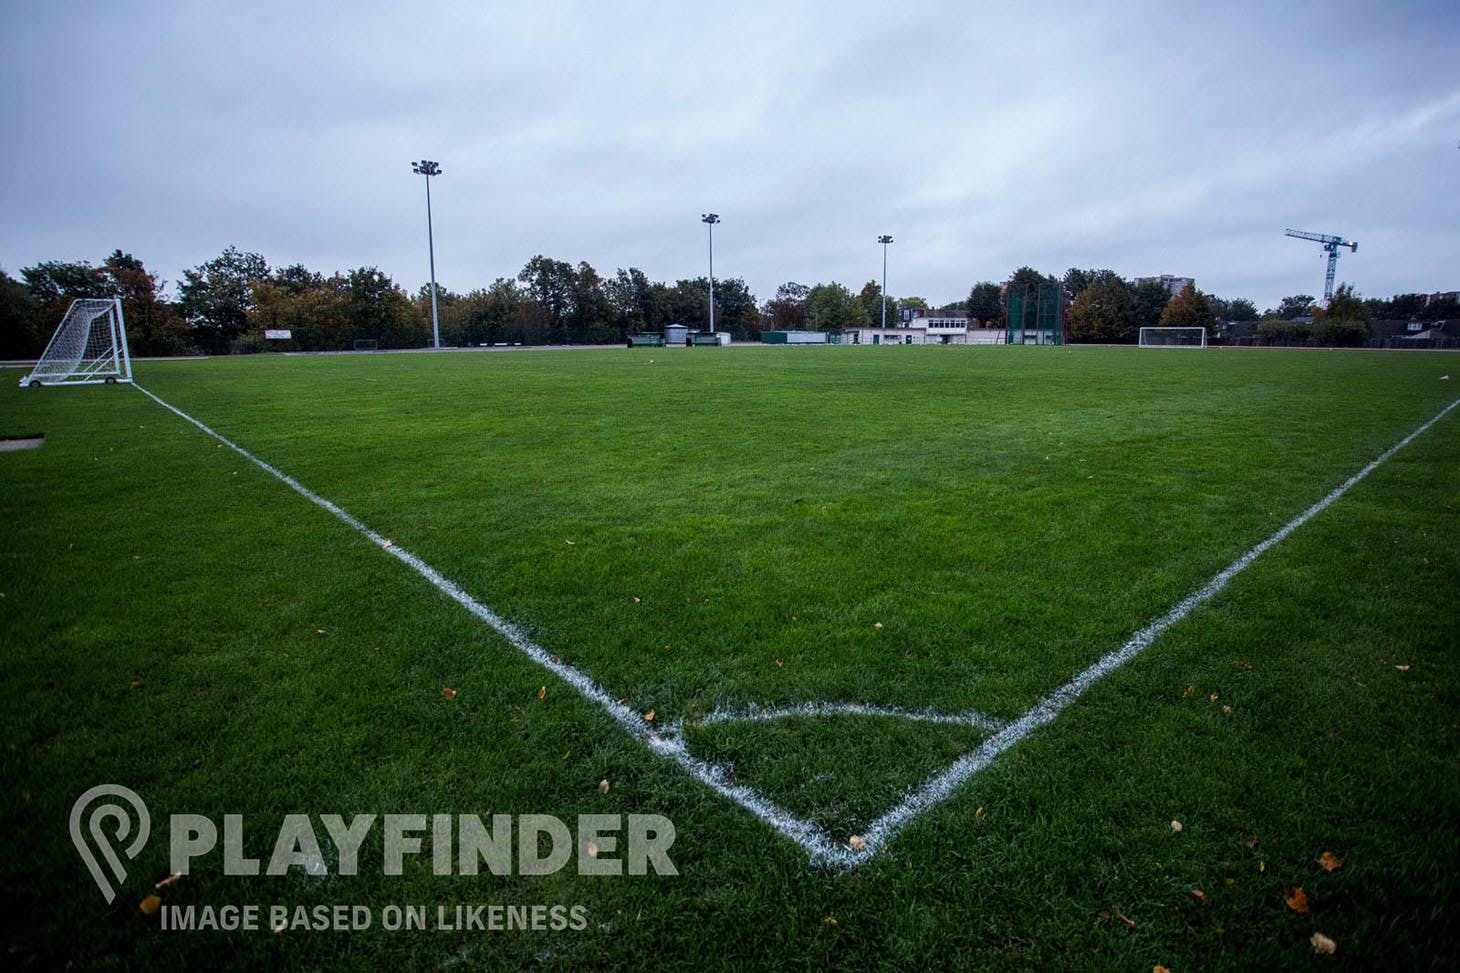 Wanstead Flats Playing Fields (Capel Road) 11 a side | Grass football pitch